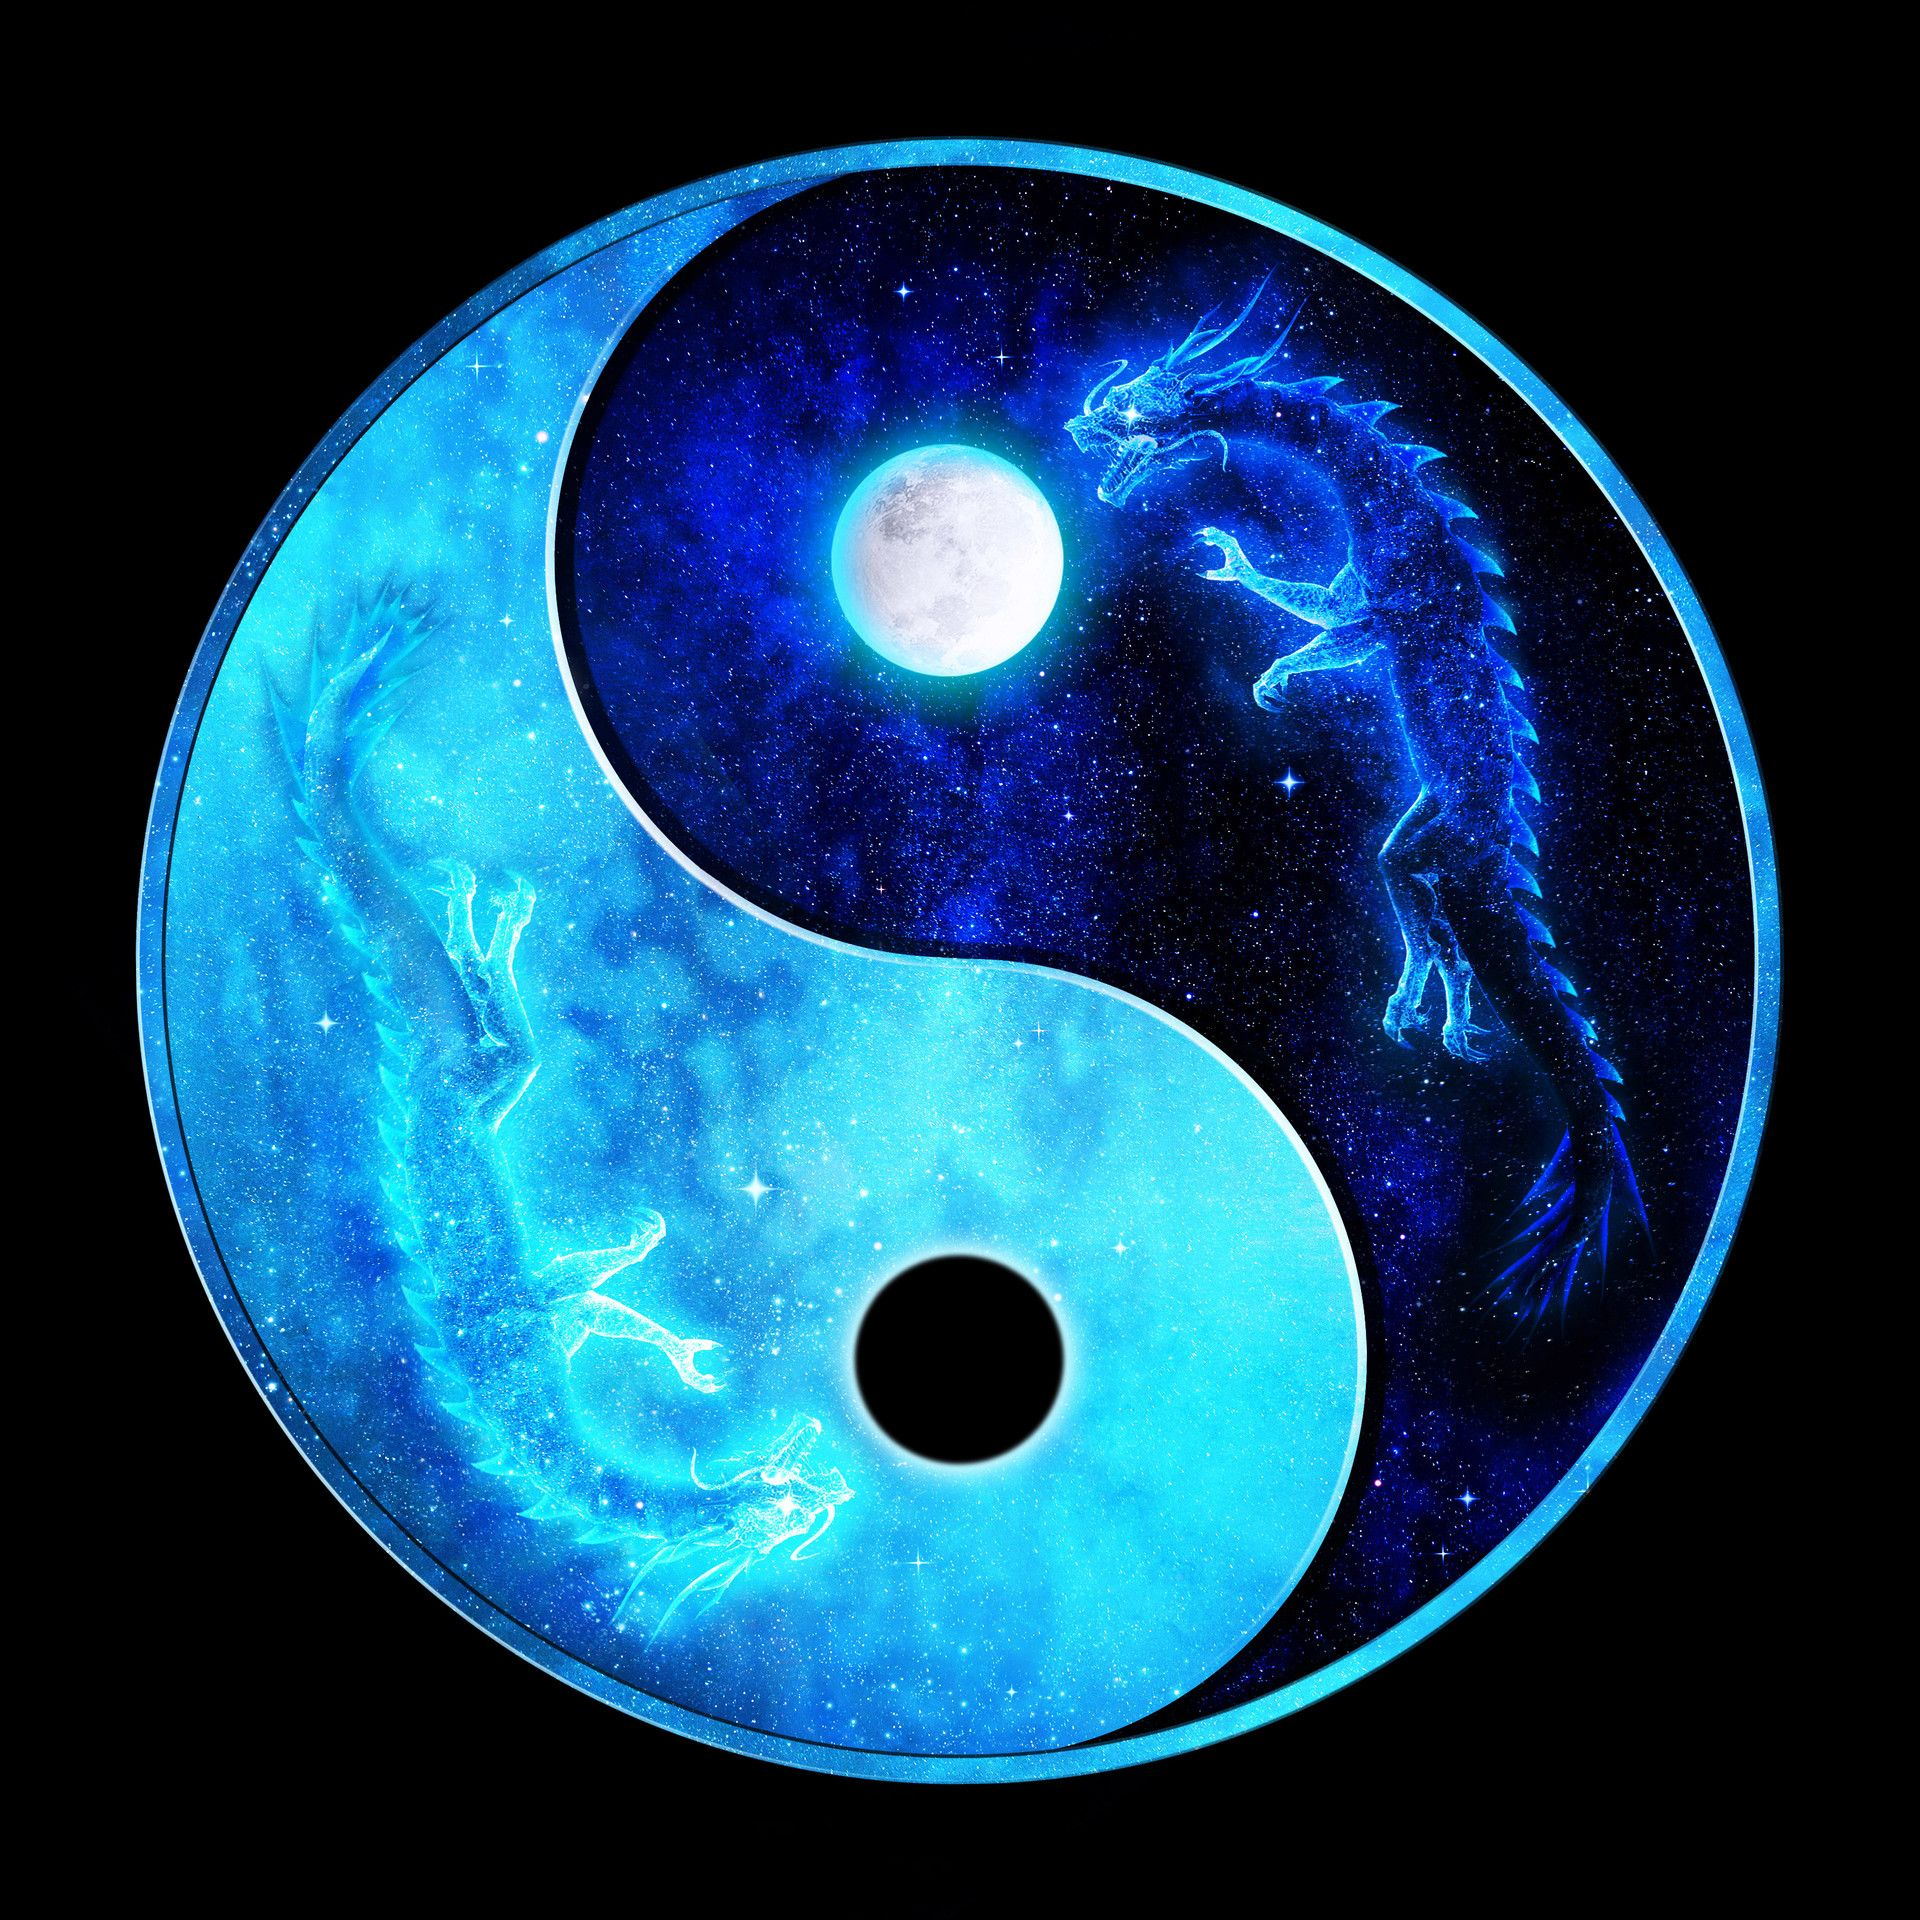 Full And Eclipse Moon Dragon Ying Yang With Images